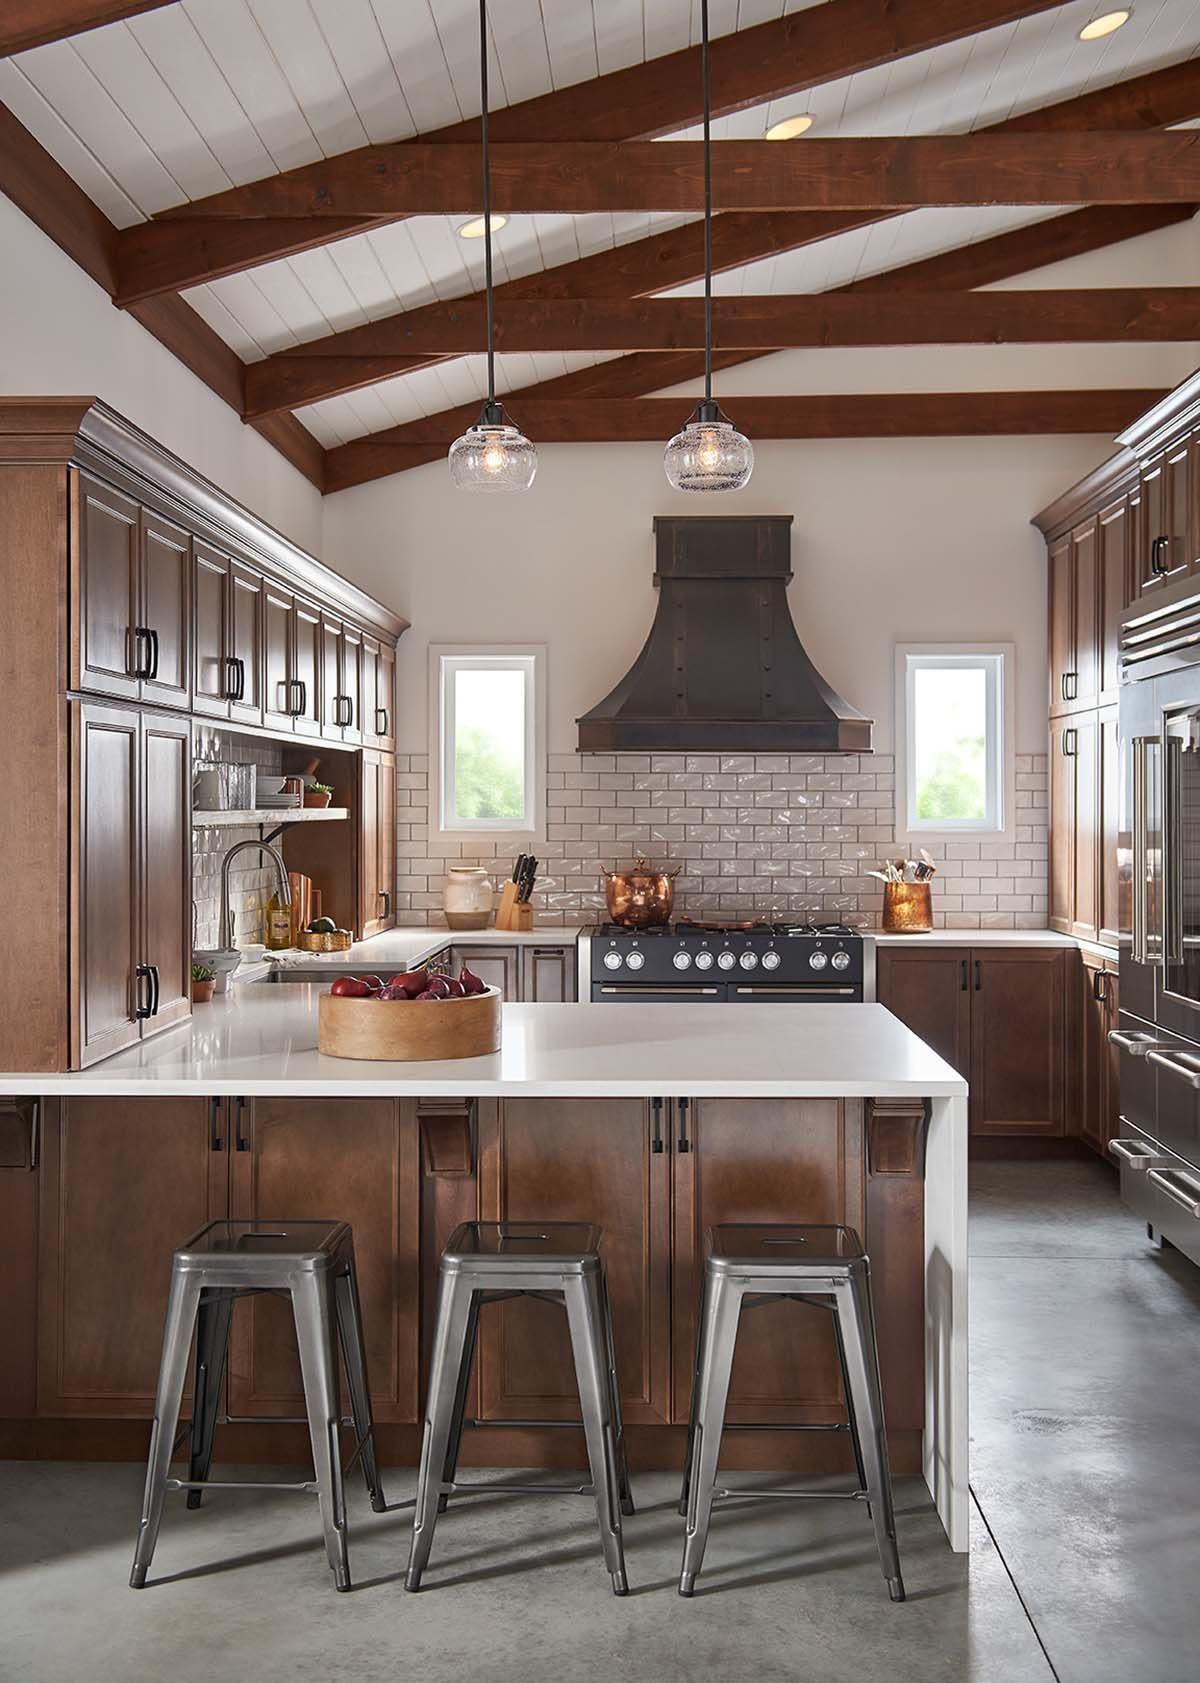 Designing With Maple Truffle in 2019 | Maple kitchen ... on Maple Cabinets Kitchen Ideas  id=58121